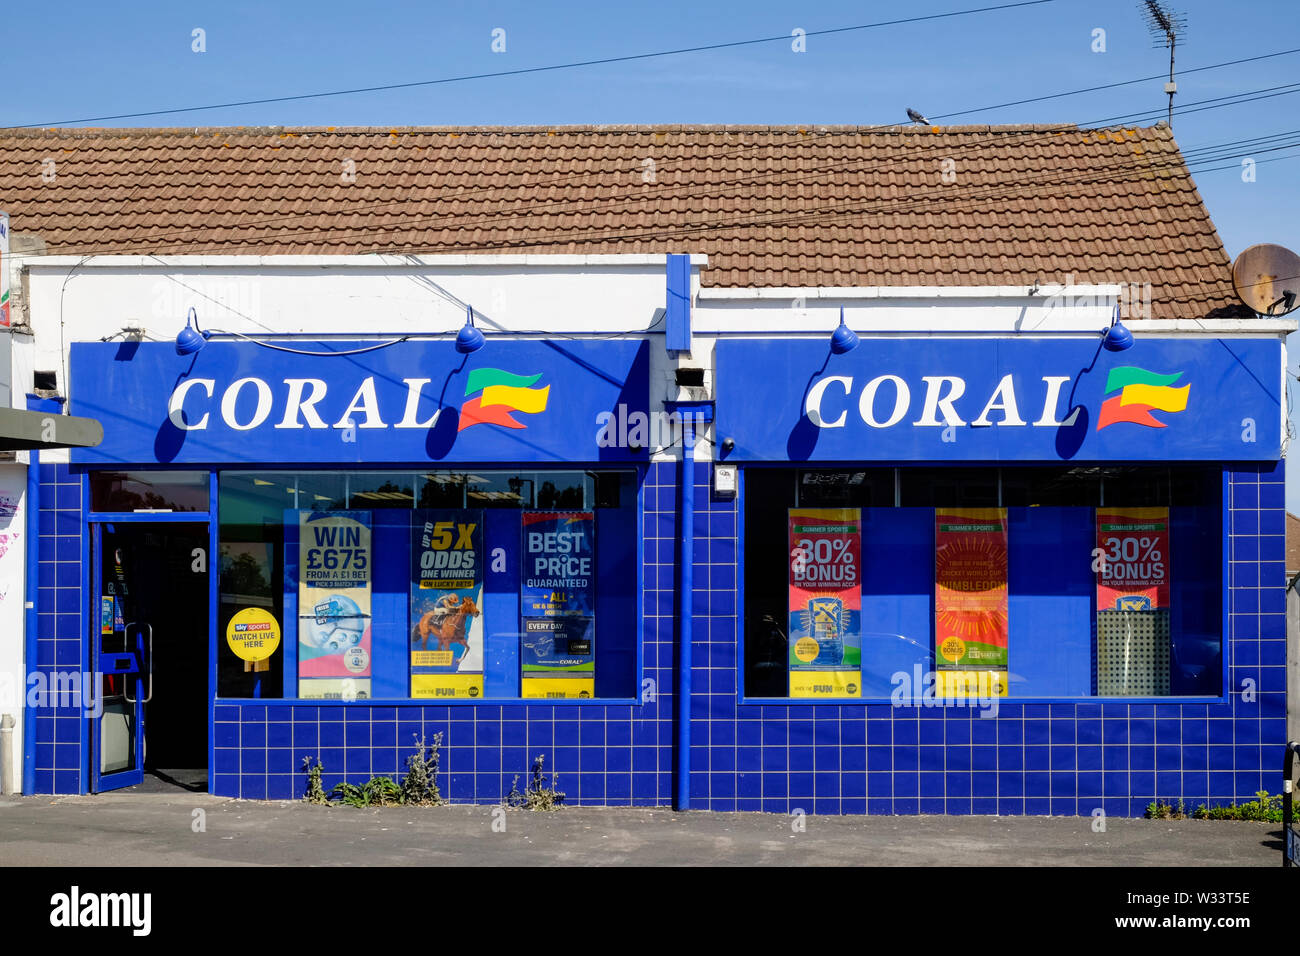 Coral betting shop redditch cinema betting point spread college football